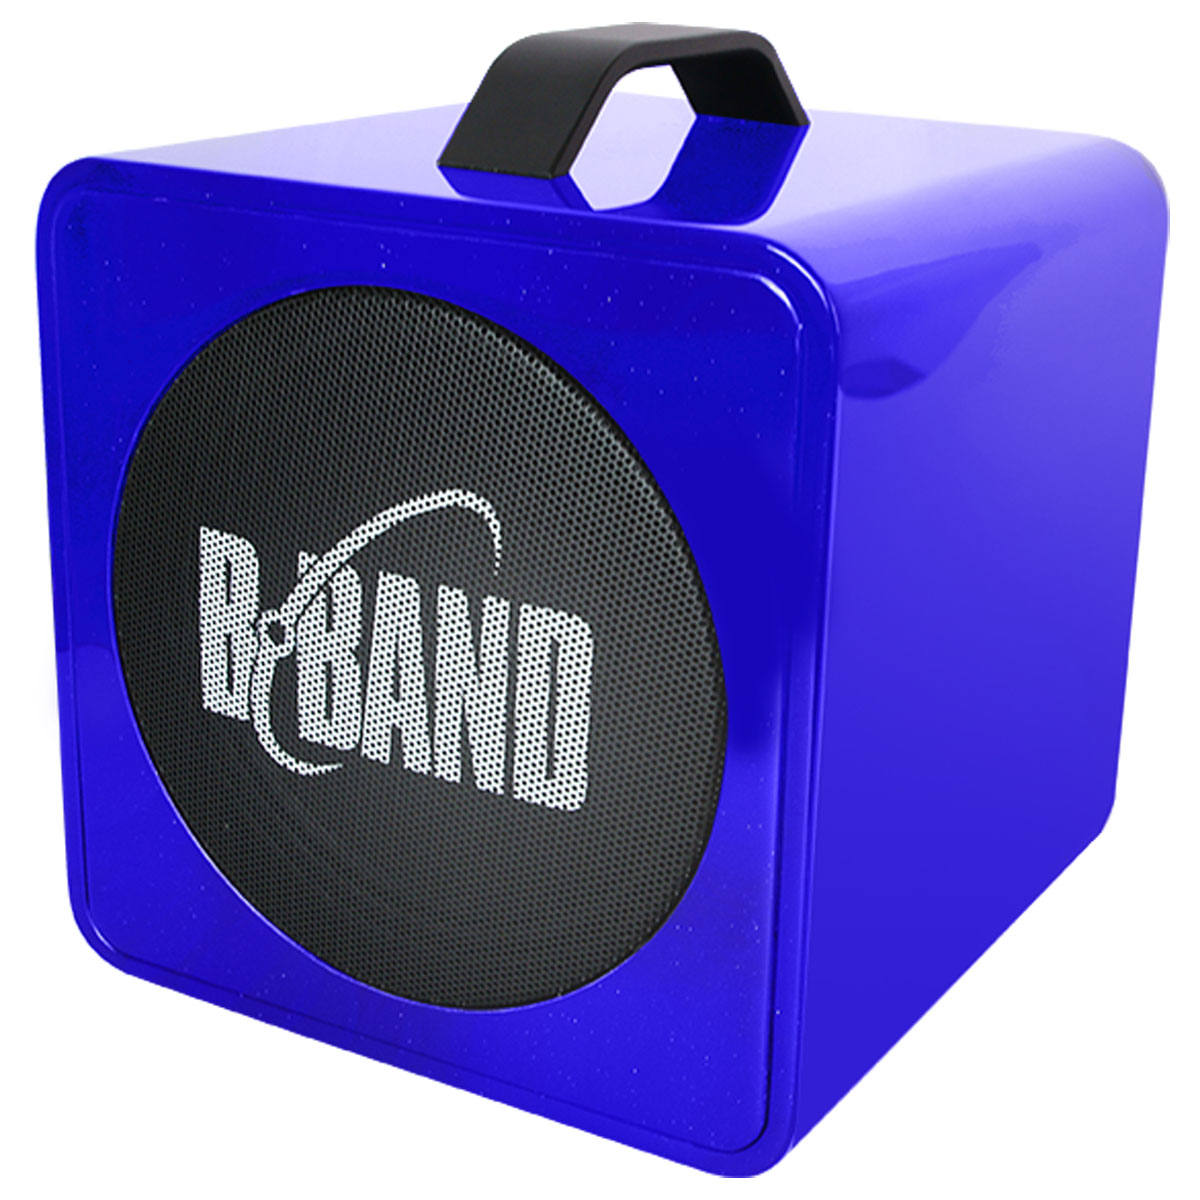 B-Band / AC45J Blue Portable Acoustic Amplifier 充電式 ポータブルアンプ